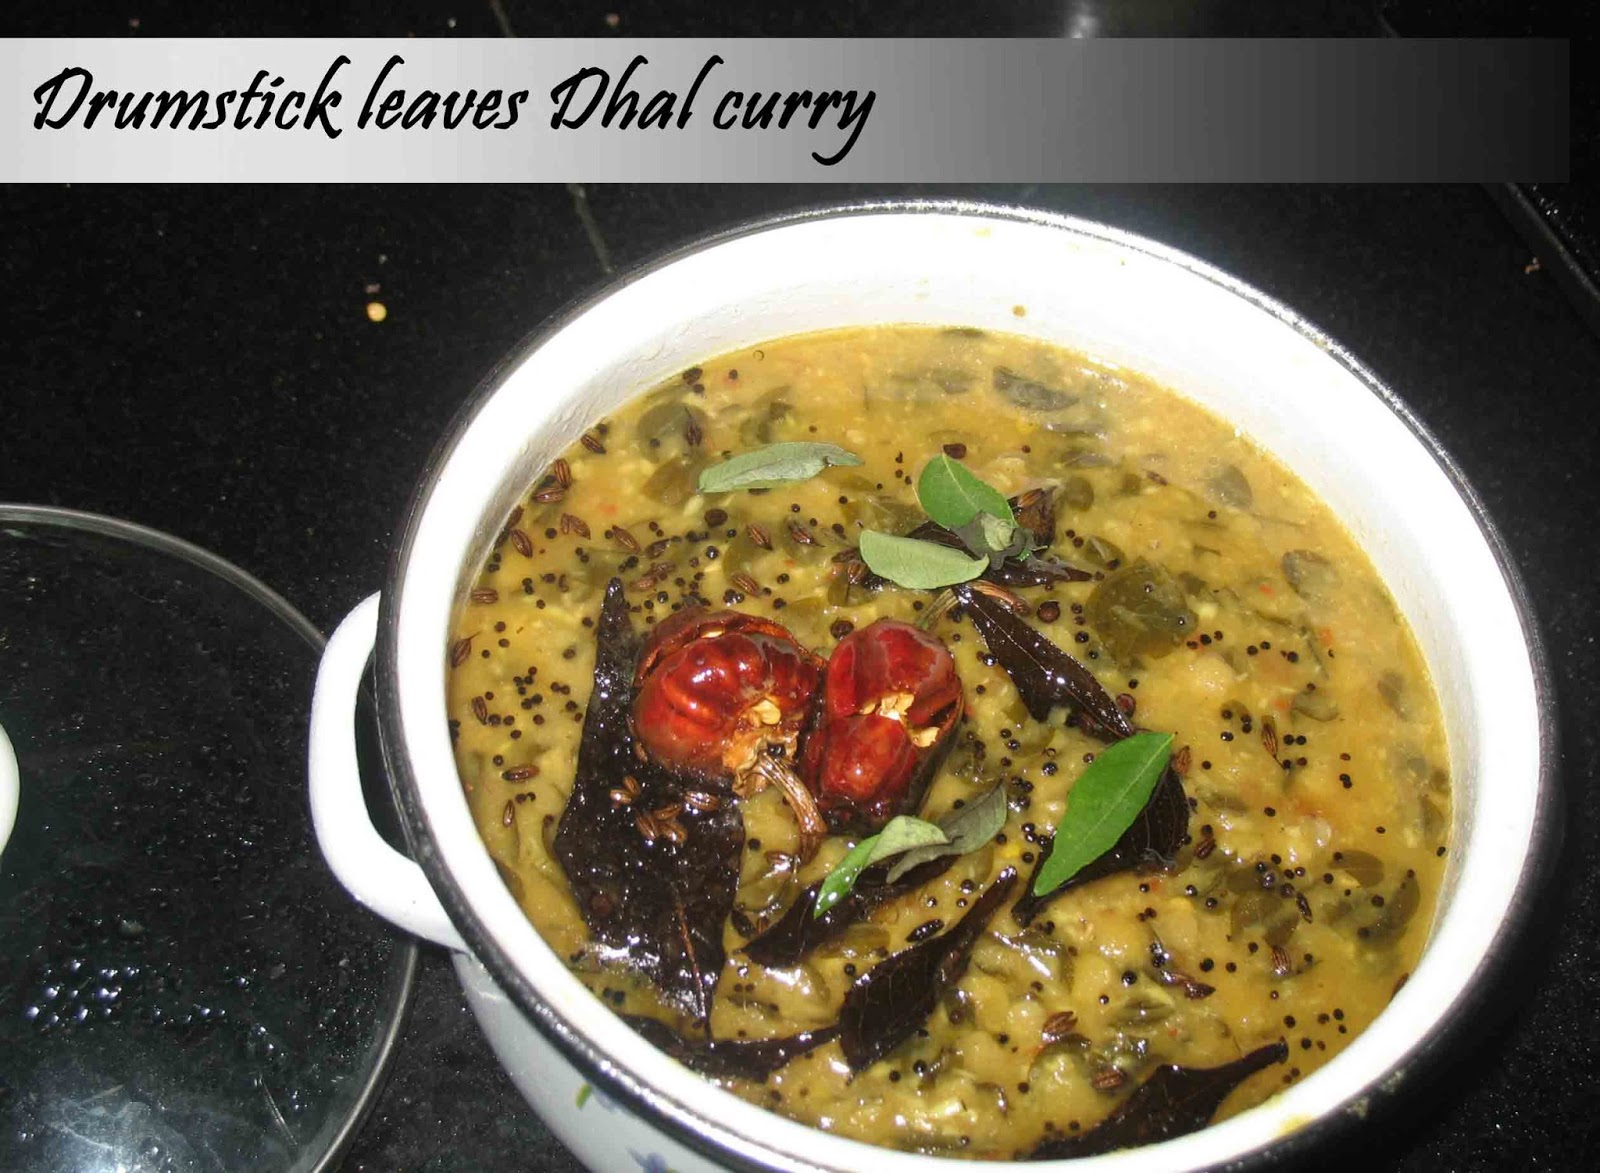 Drumstick Leaves Dhal curry